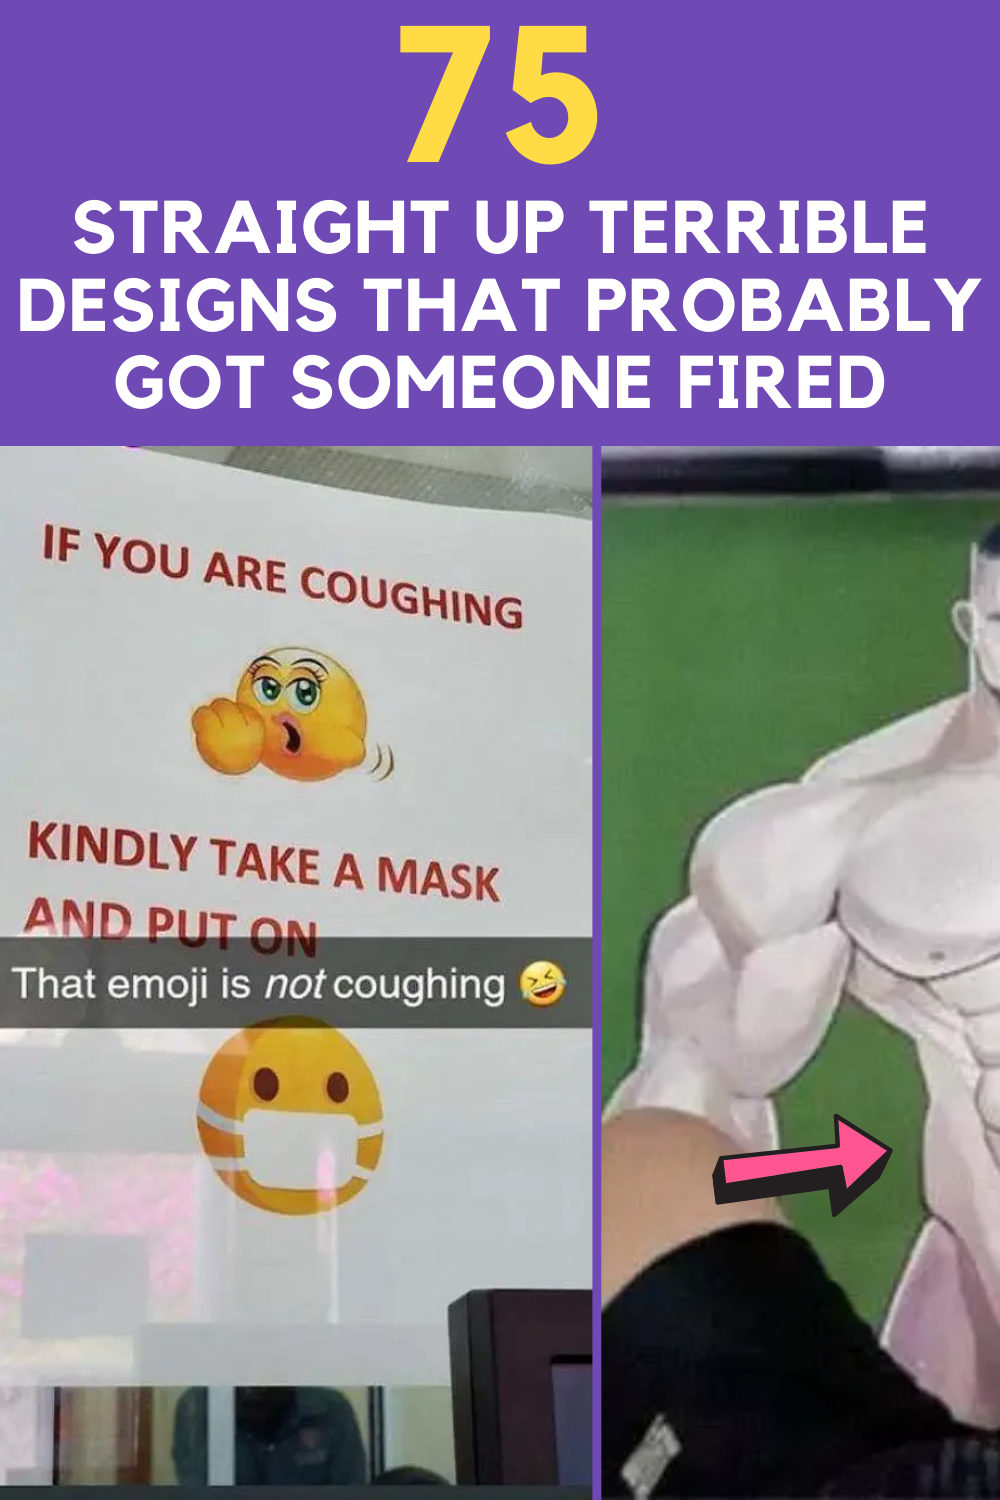 75 Straight Up Terrible Designs That Probably Got Someone Fired In 2020 Viral Trend Design Design Fails